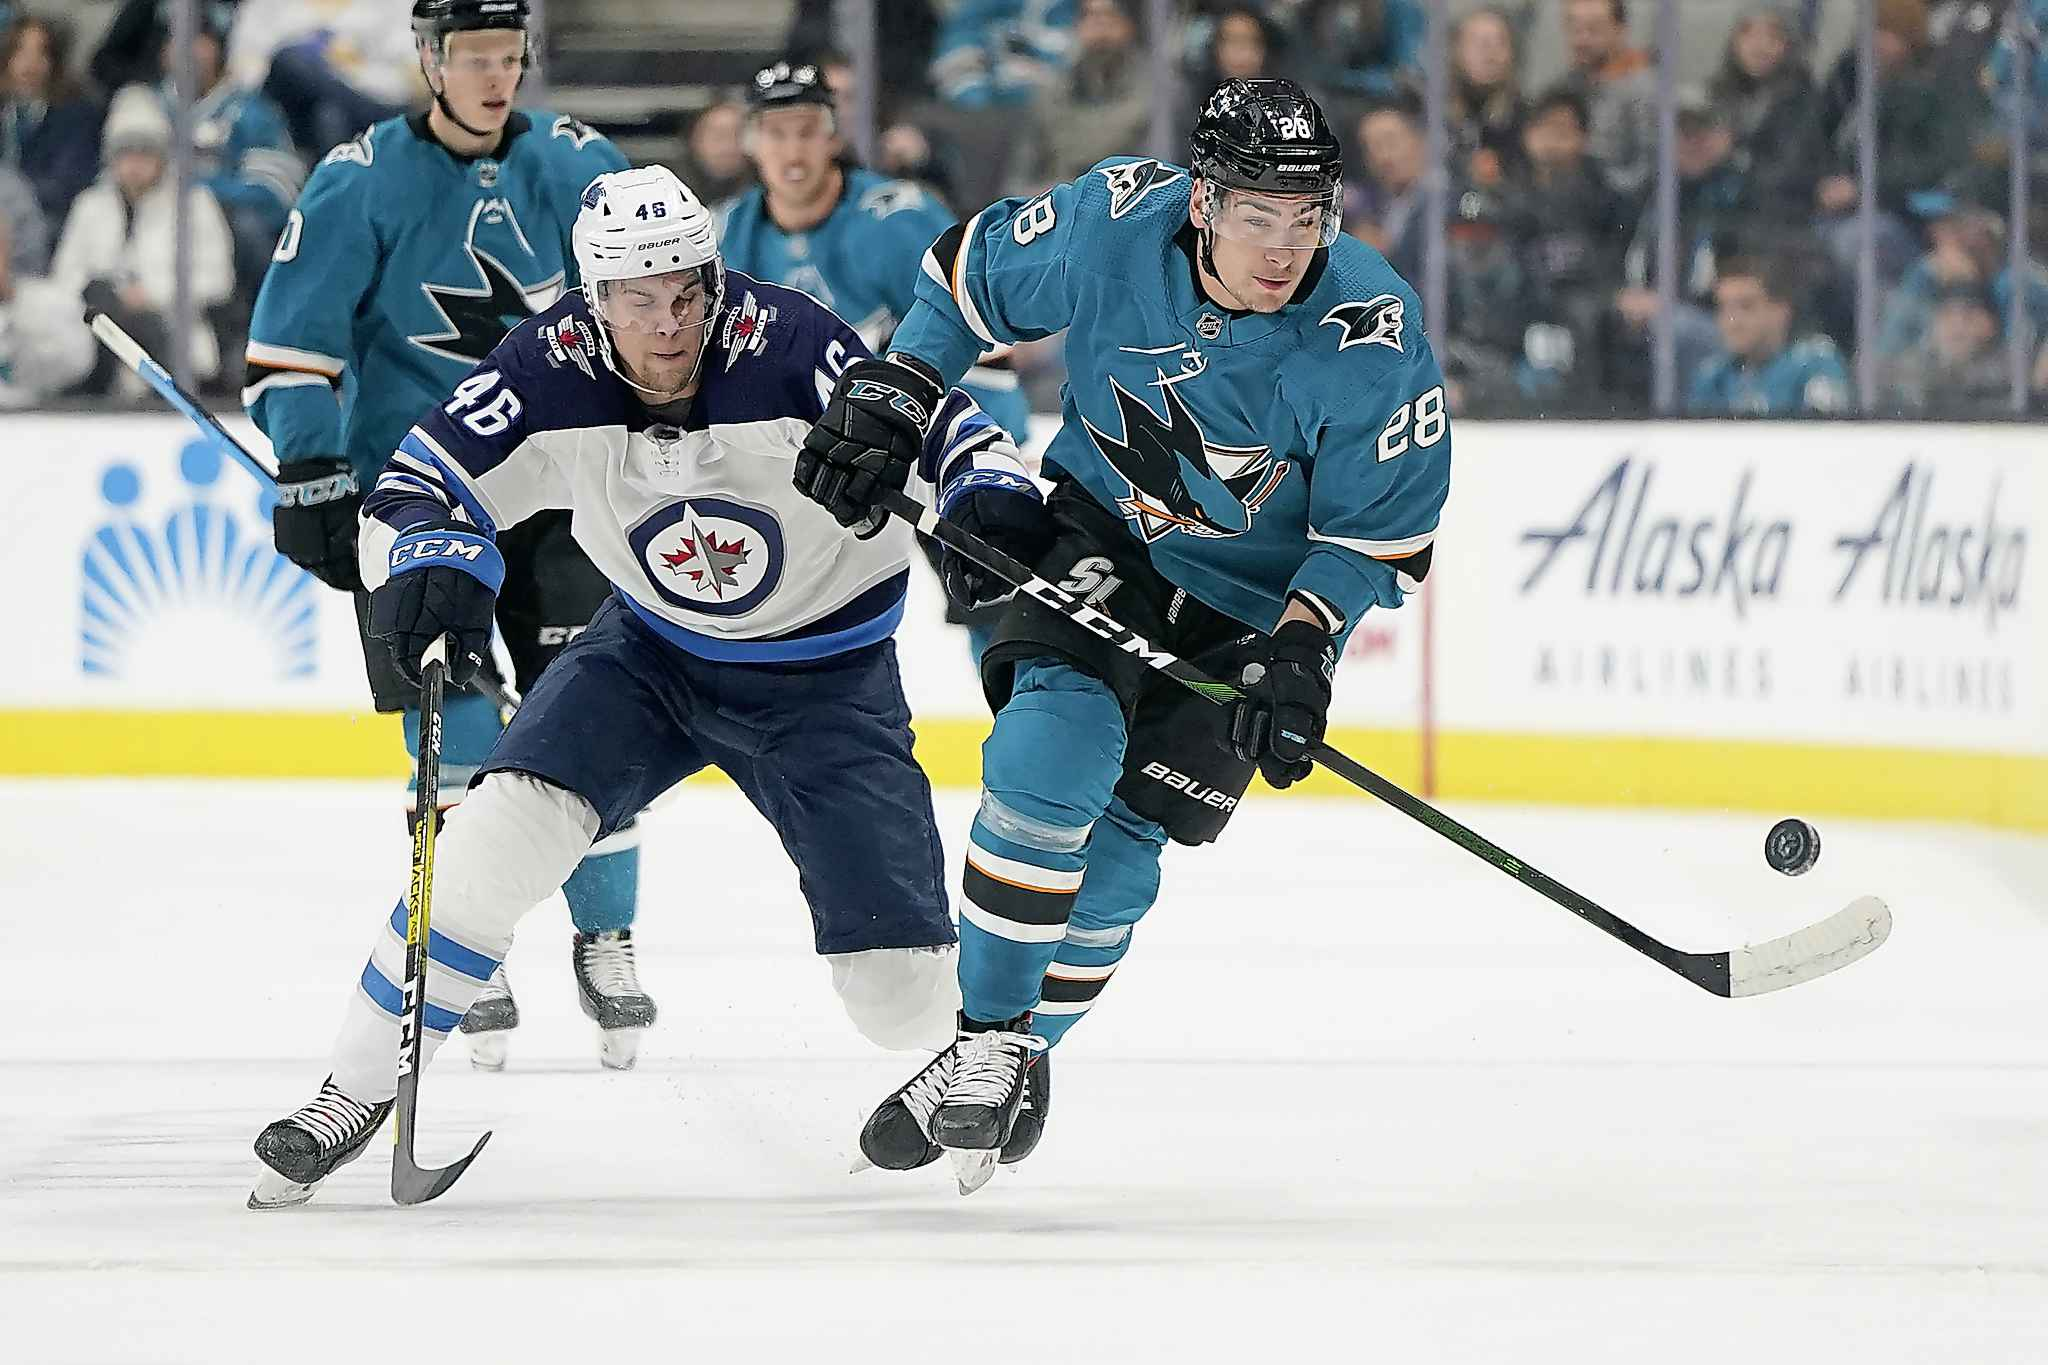 San Jose Sharks right wing Timo Meier competes for the puck with Winnipeg Jets left wing Joona Luoto  during the first period.